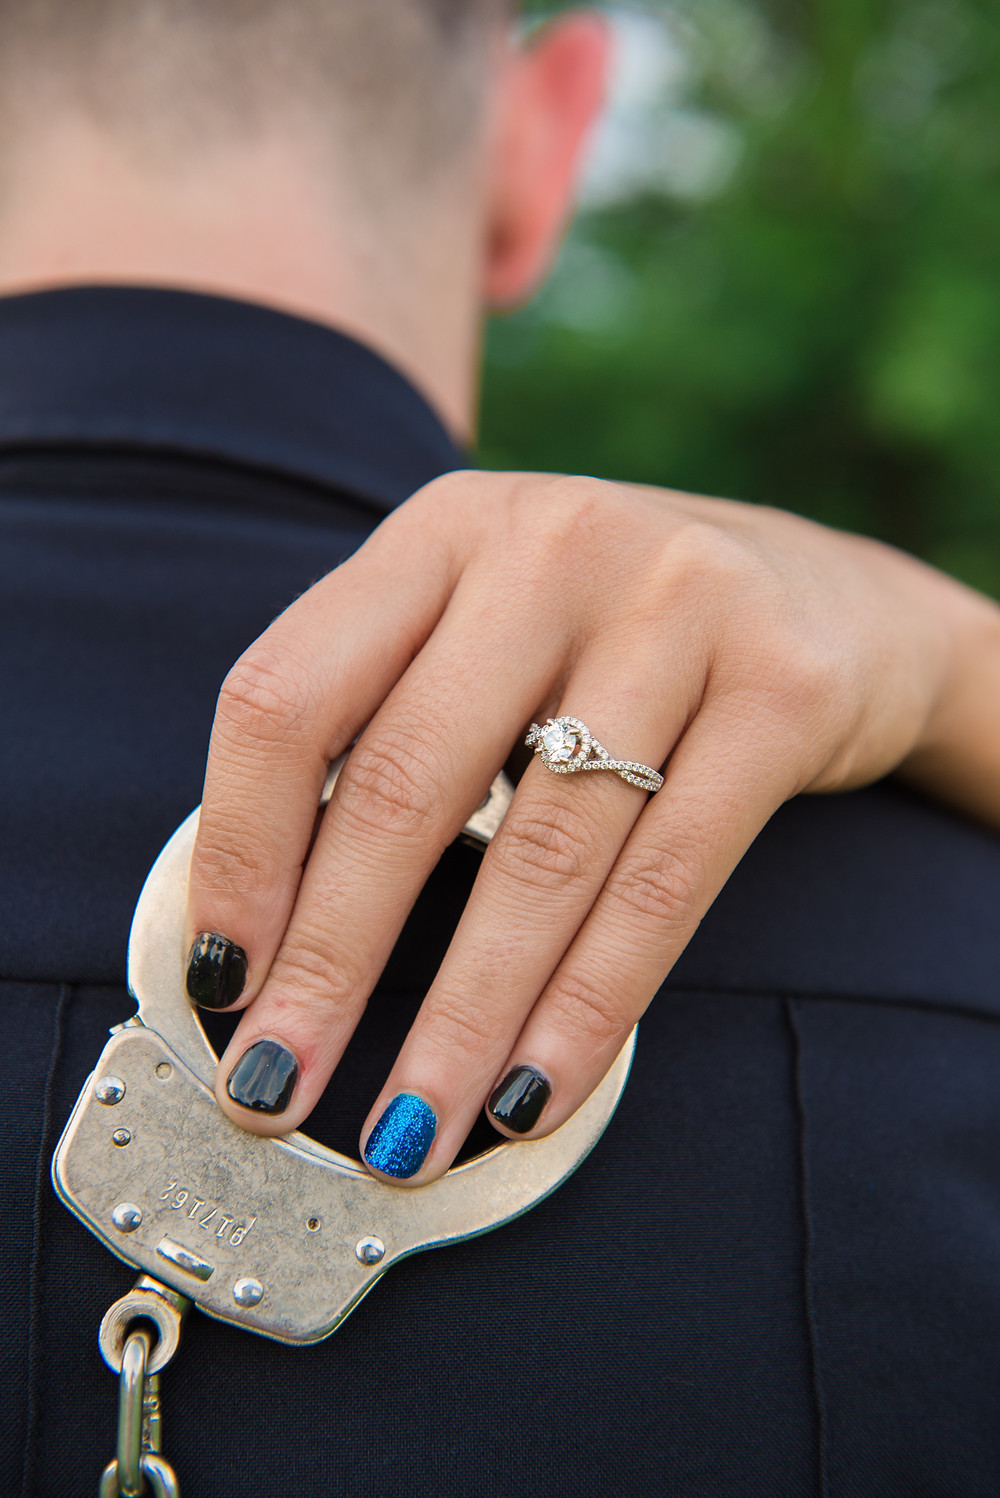 Blue a black police themed fingernail polish with the diamond engagement ring.